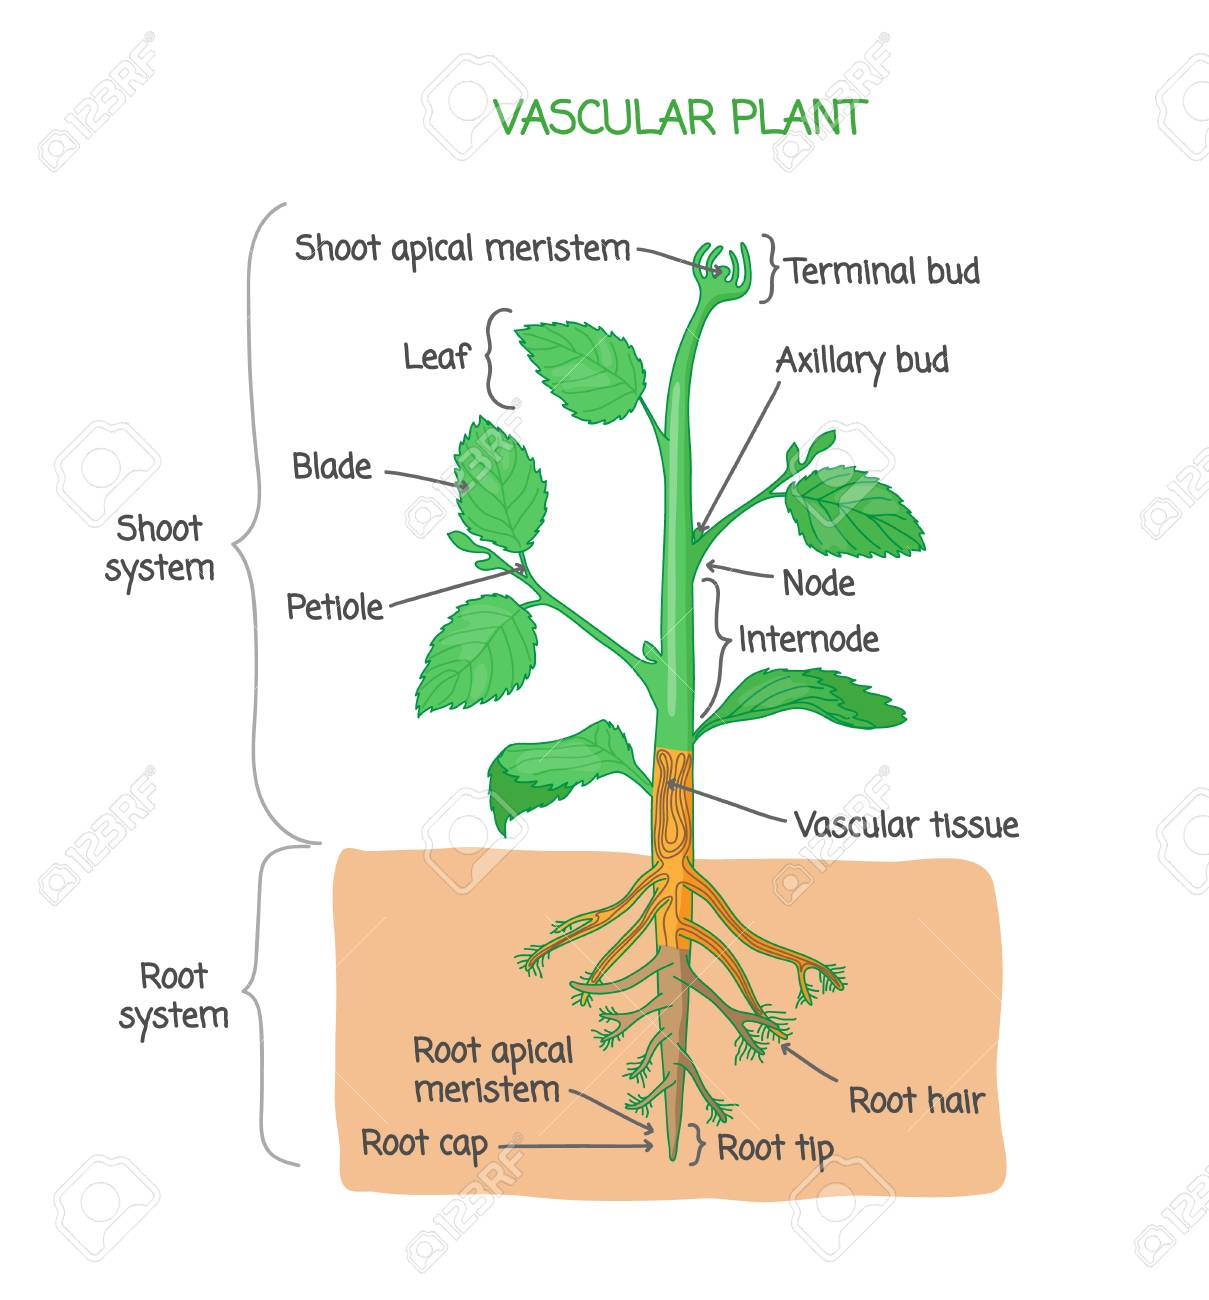 flower parts diagram without labels wiring a house vascular plant biological structure with vector illustration drawing poster educational scheme